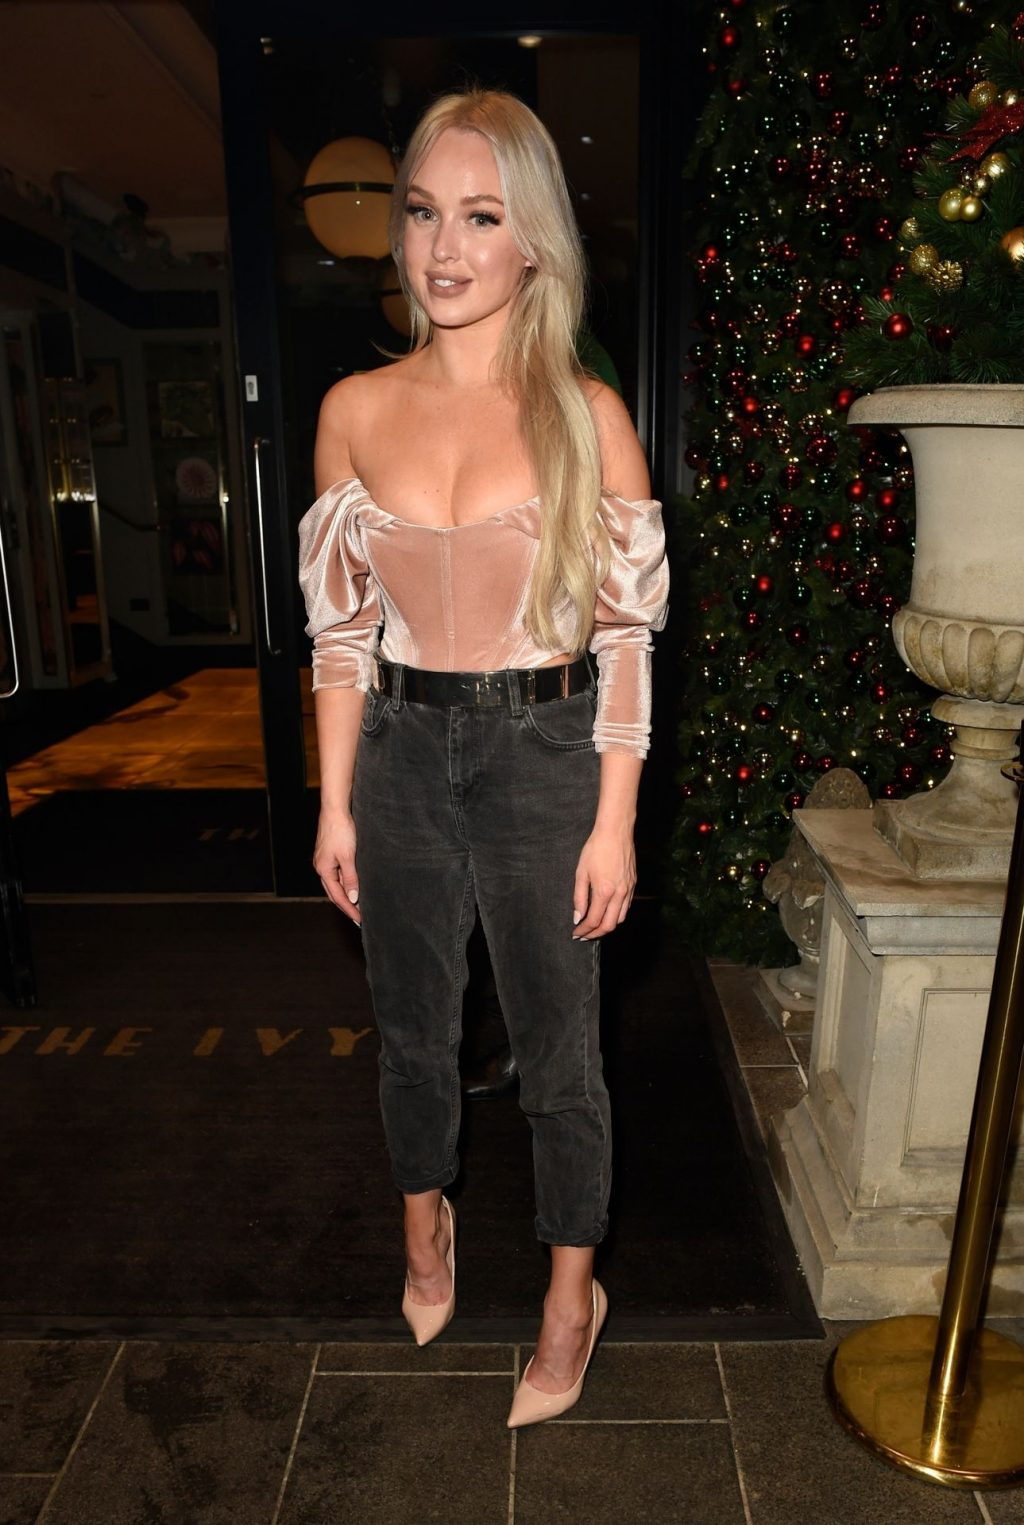 Jorgie Porter Sexy (21 Photos)